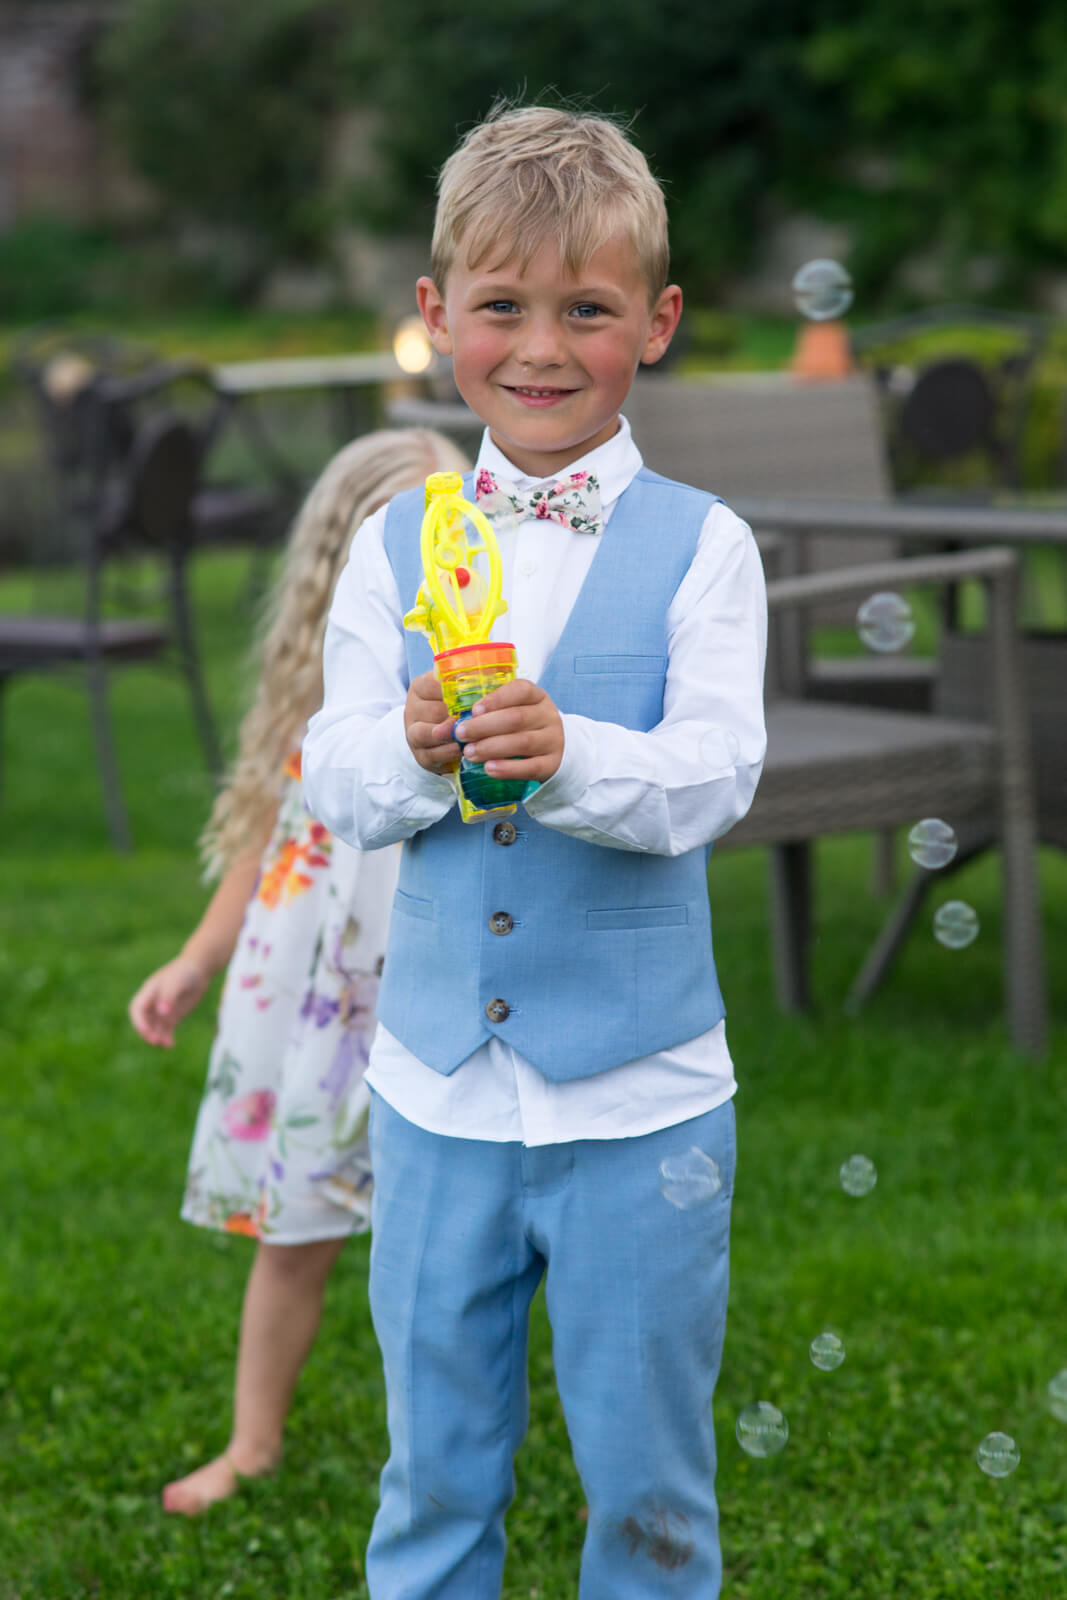 Page boy with a water pistol points it at the camera